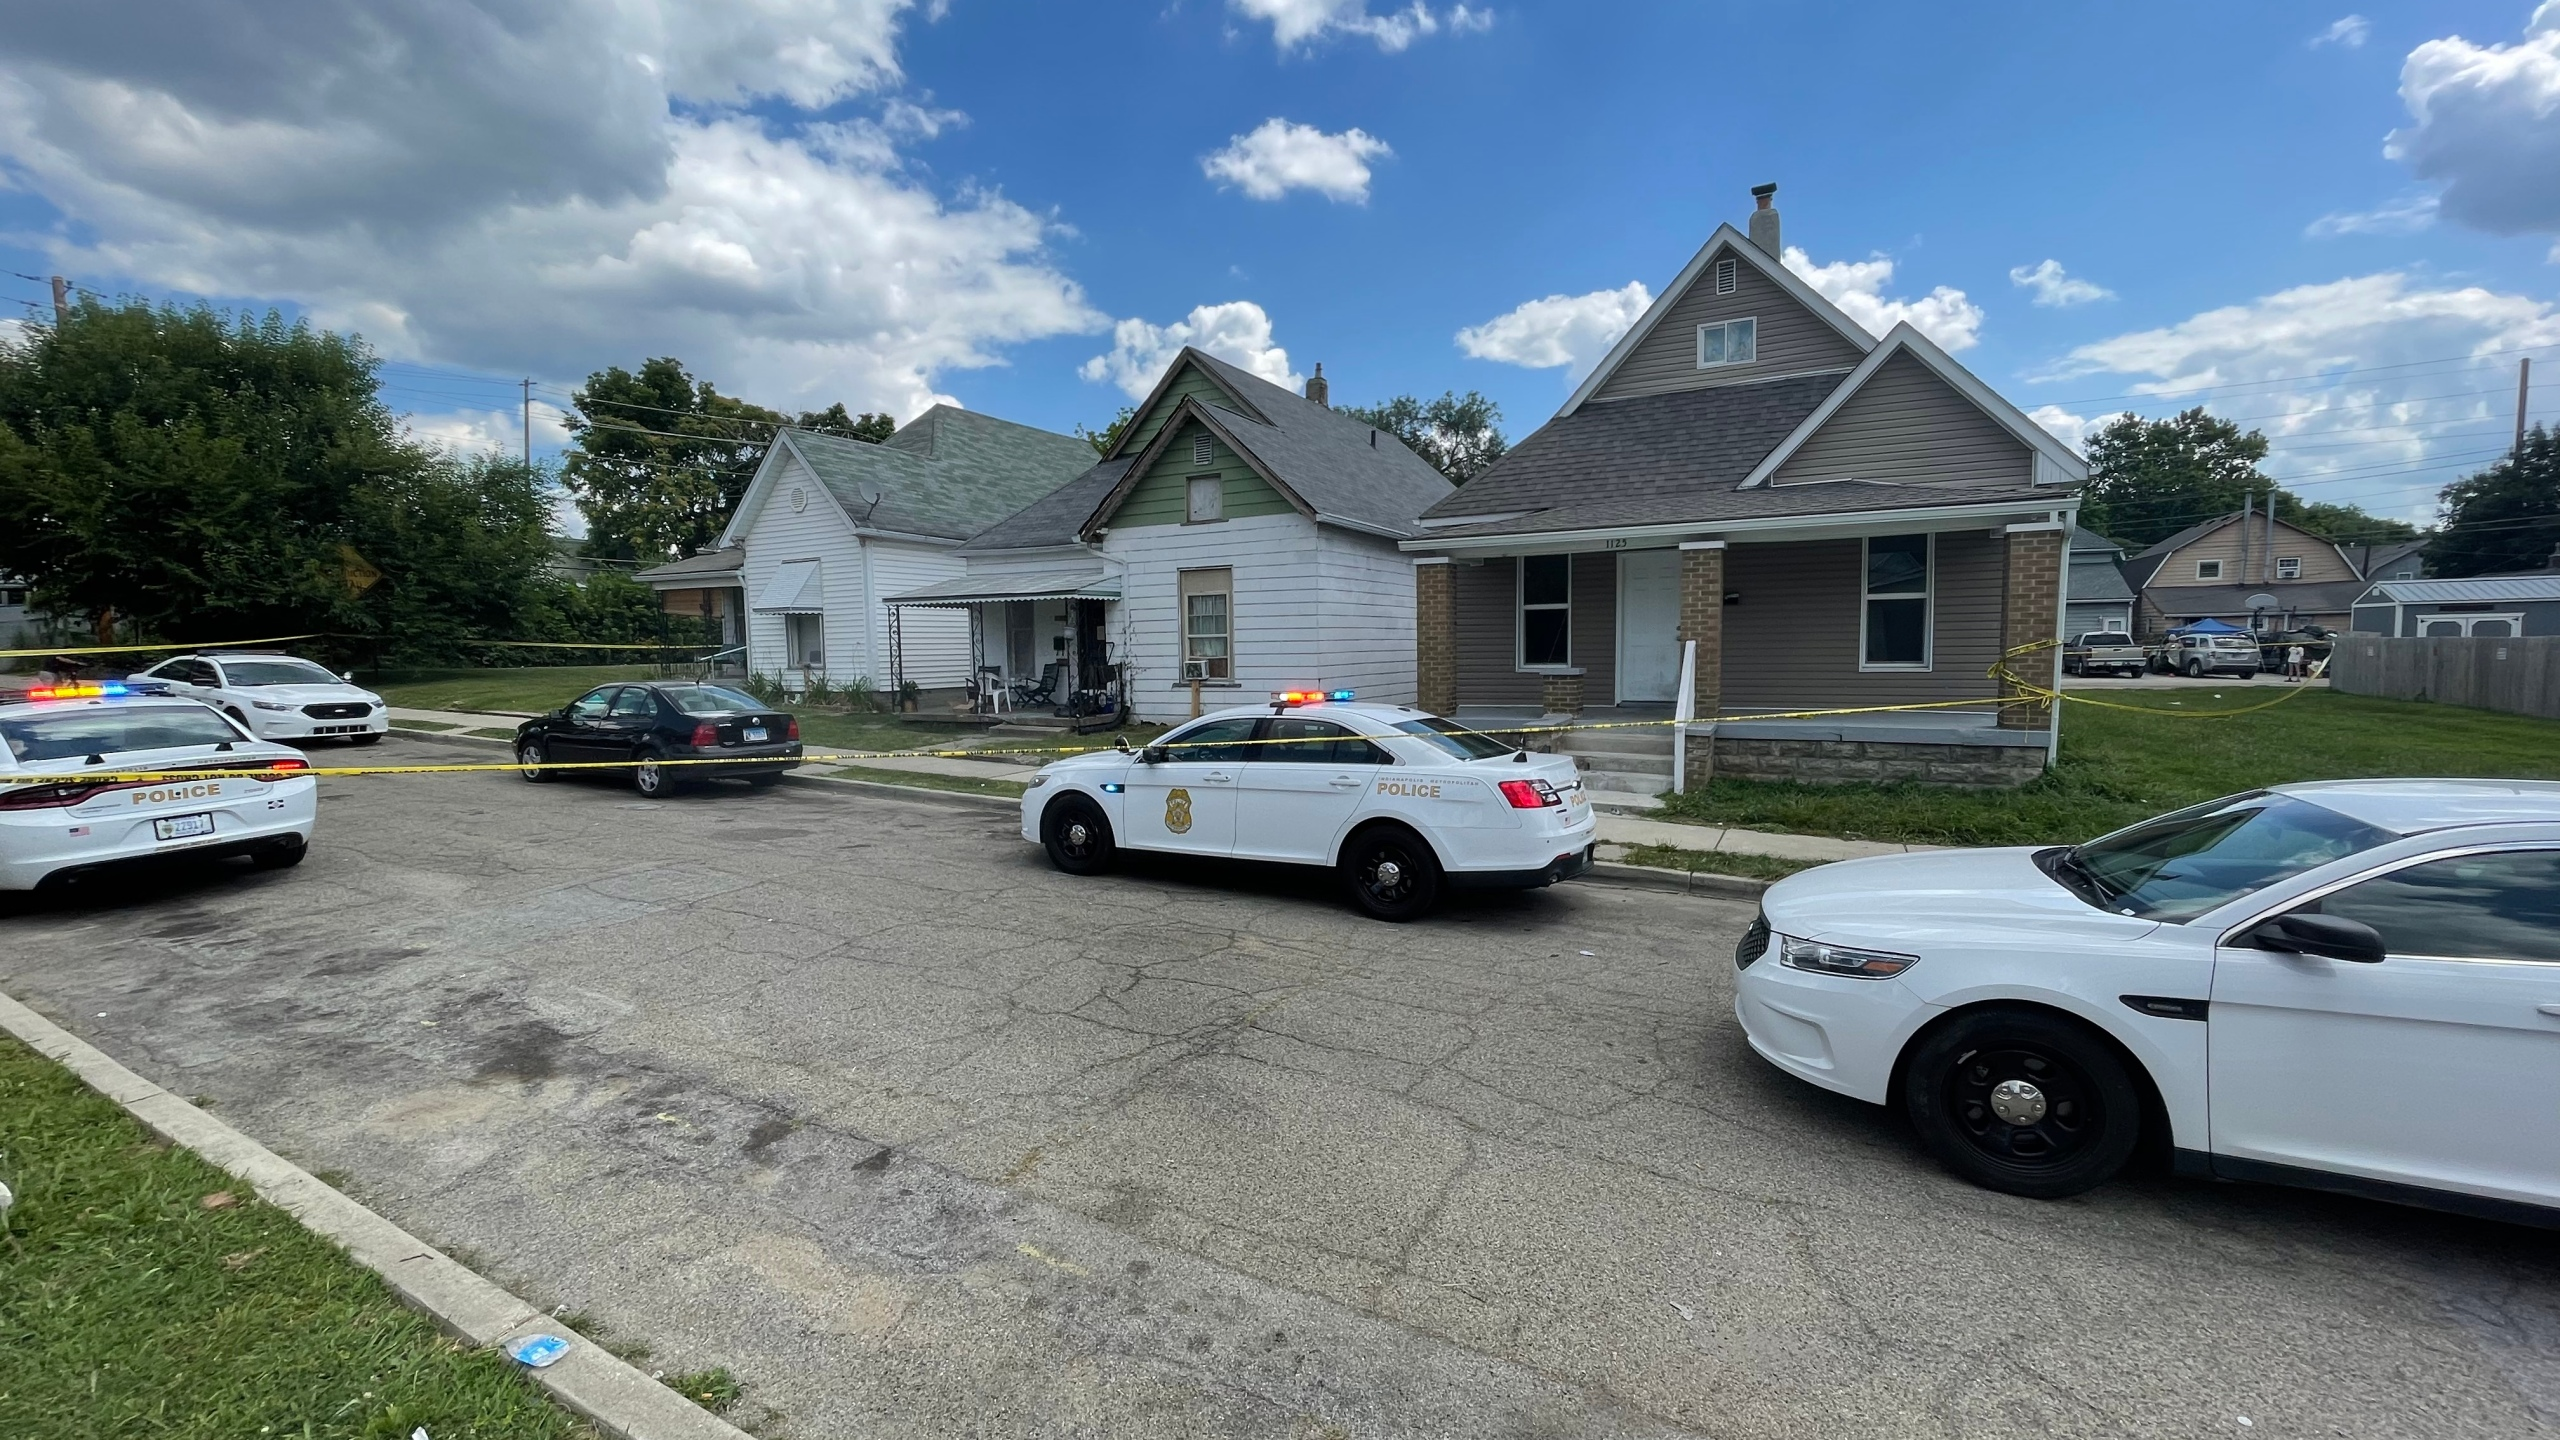 Shooting investigation underway in Fountain Square